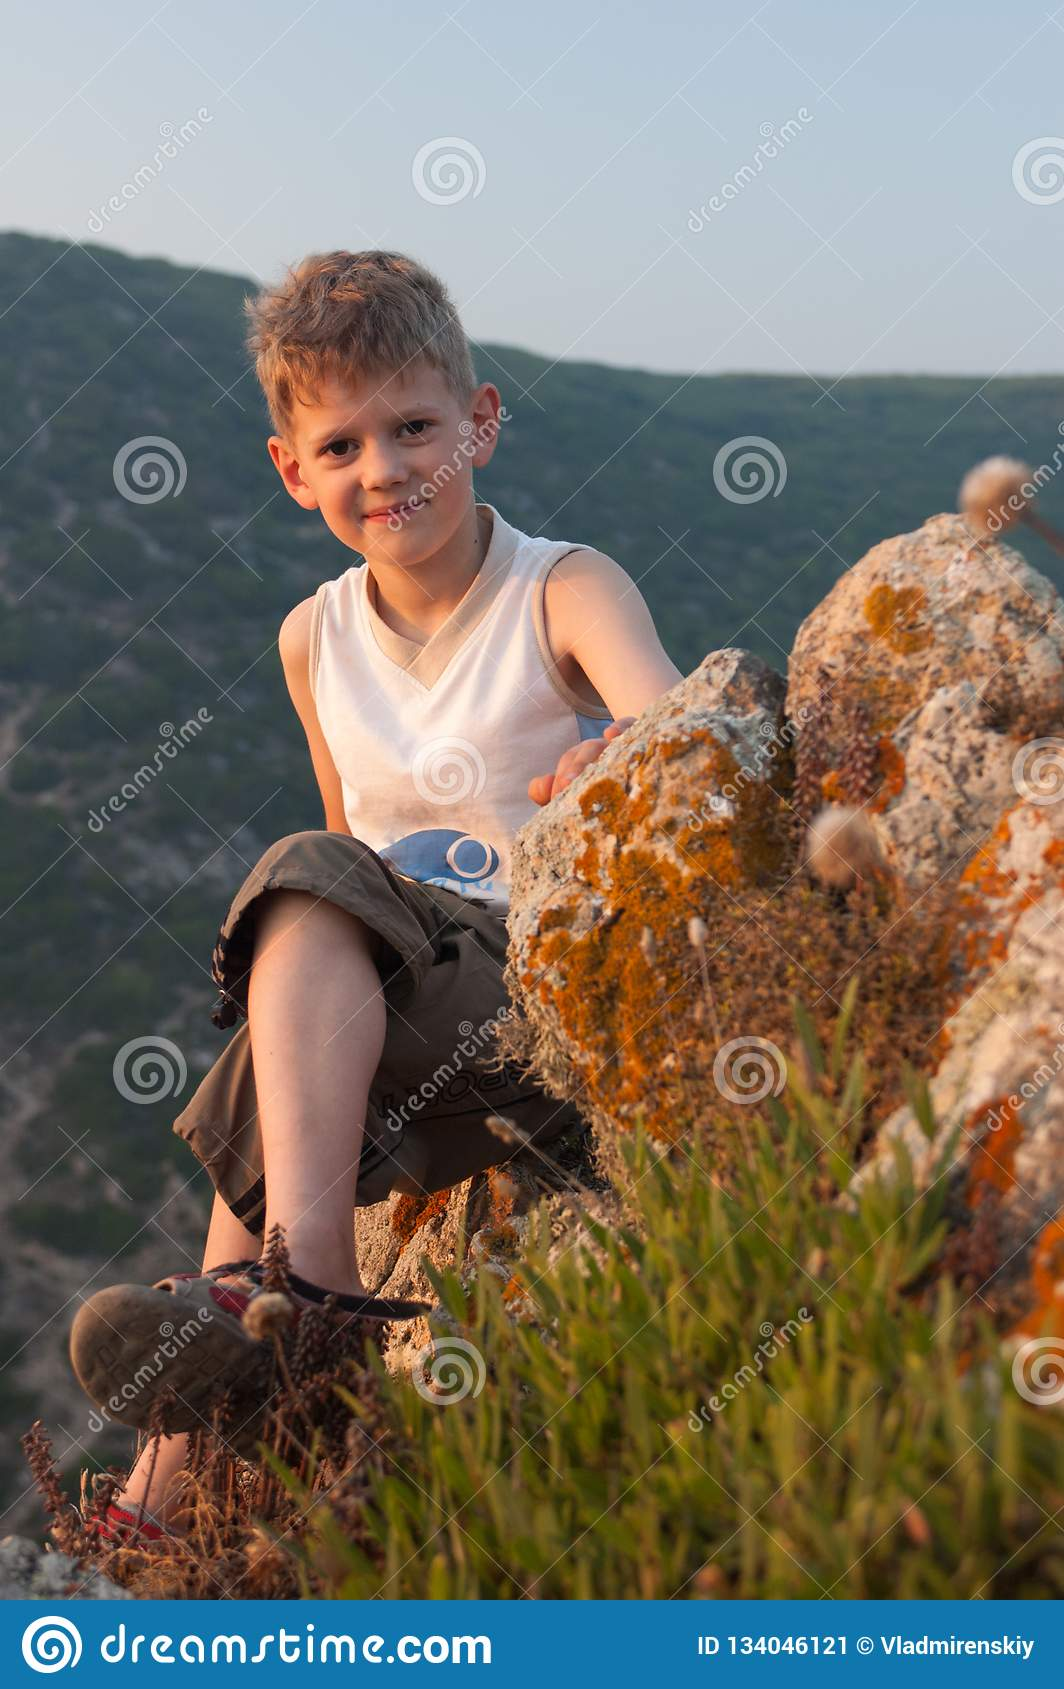 Illuminated by the warm light of the sunset sun, the boy sits on the edge of a cliff